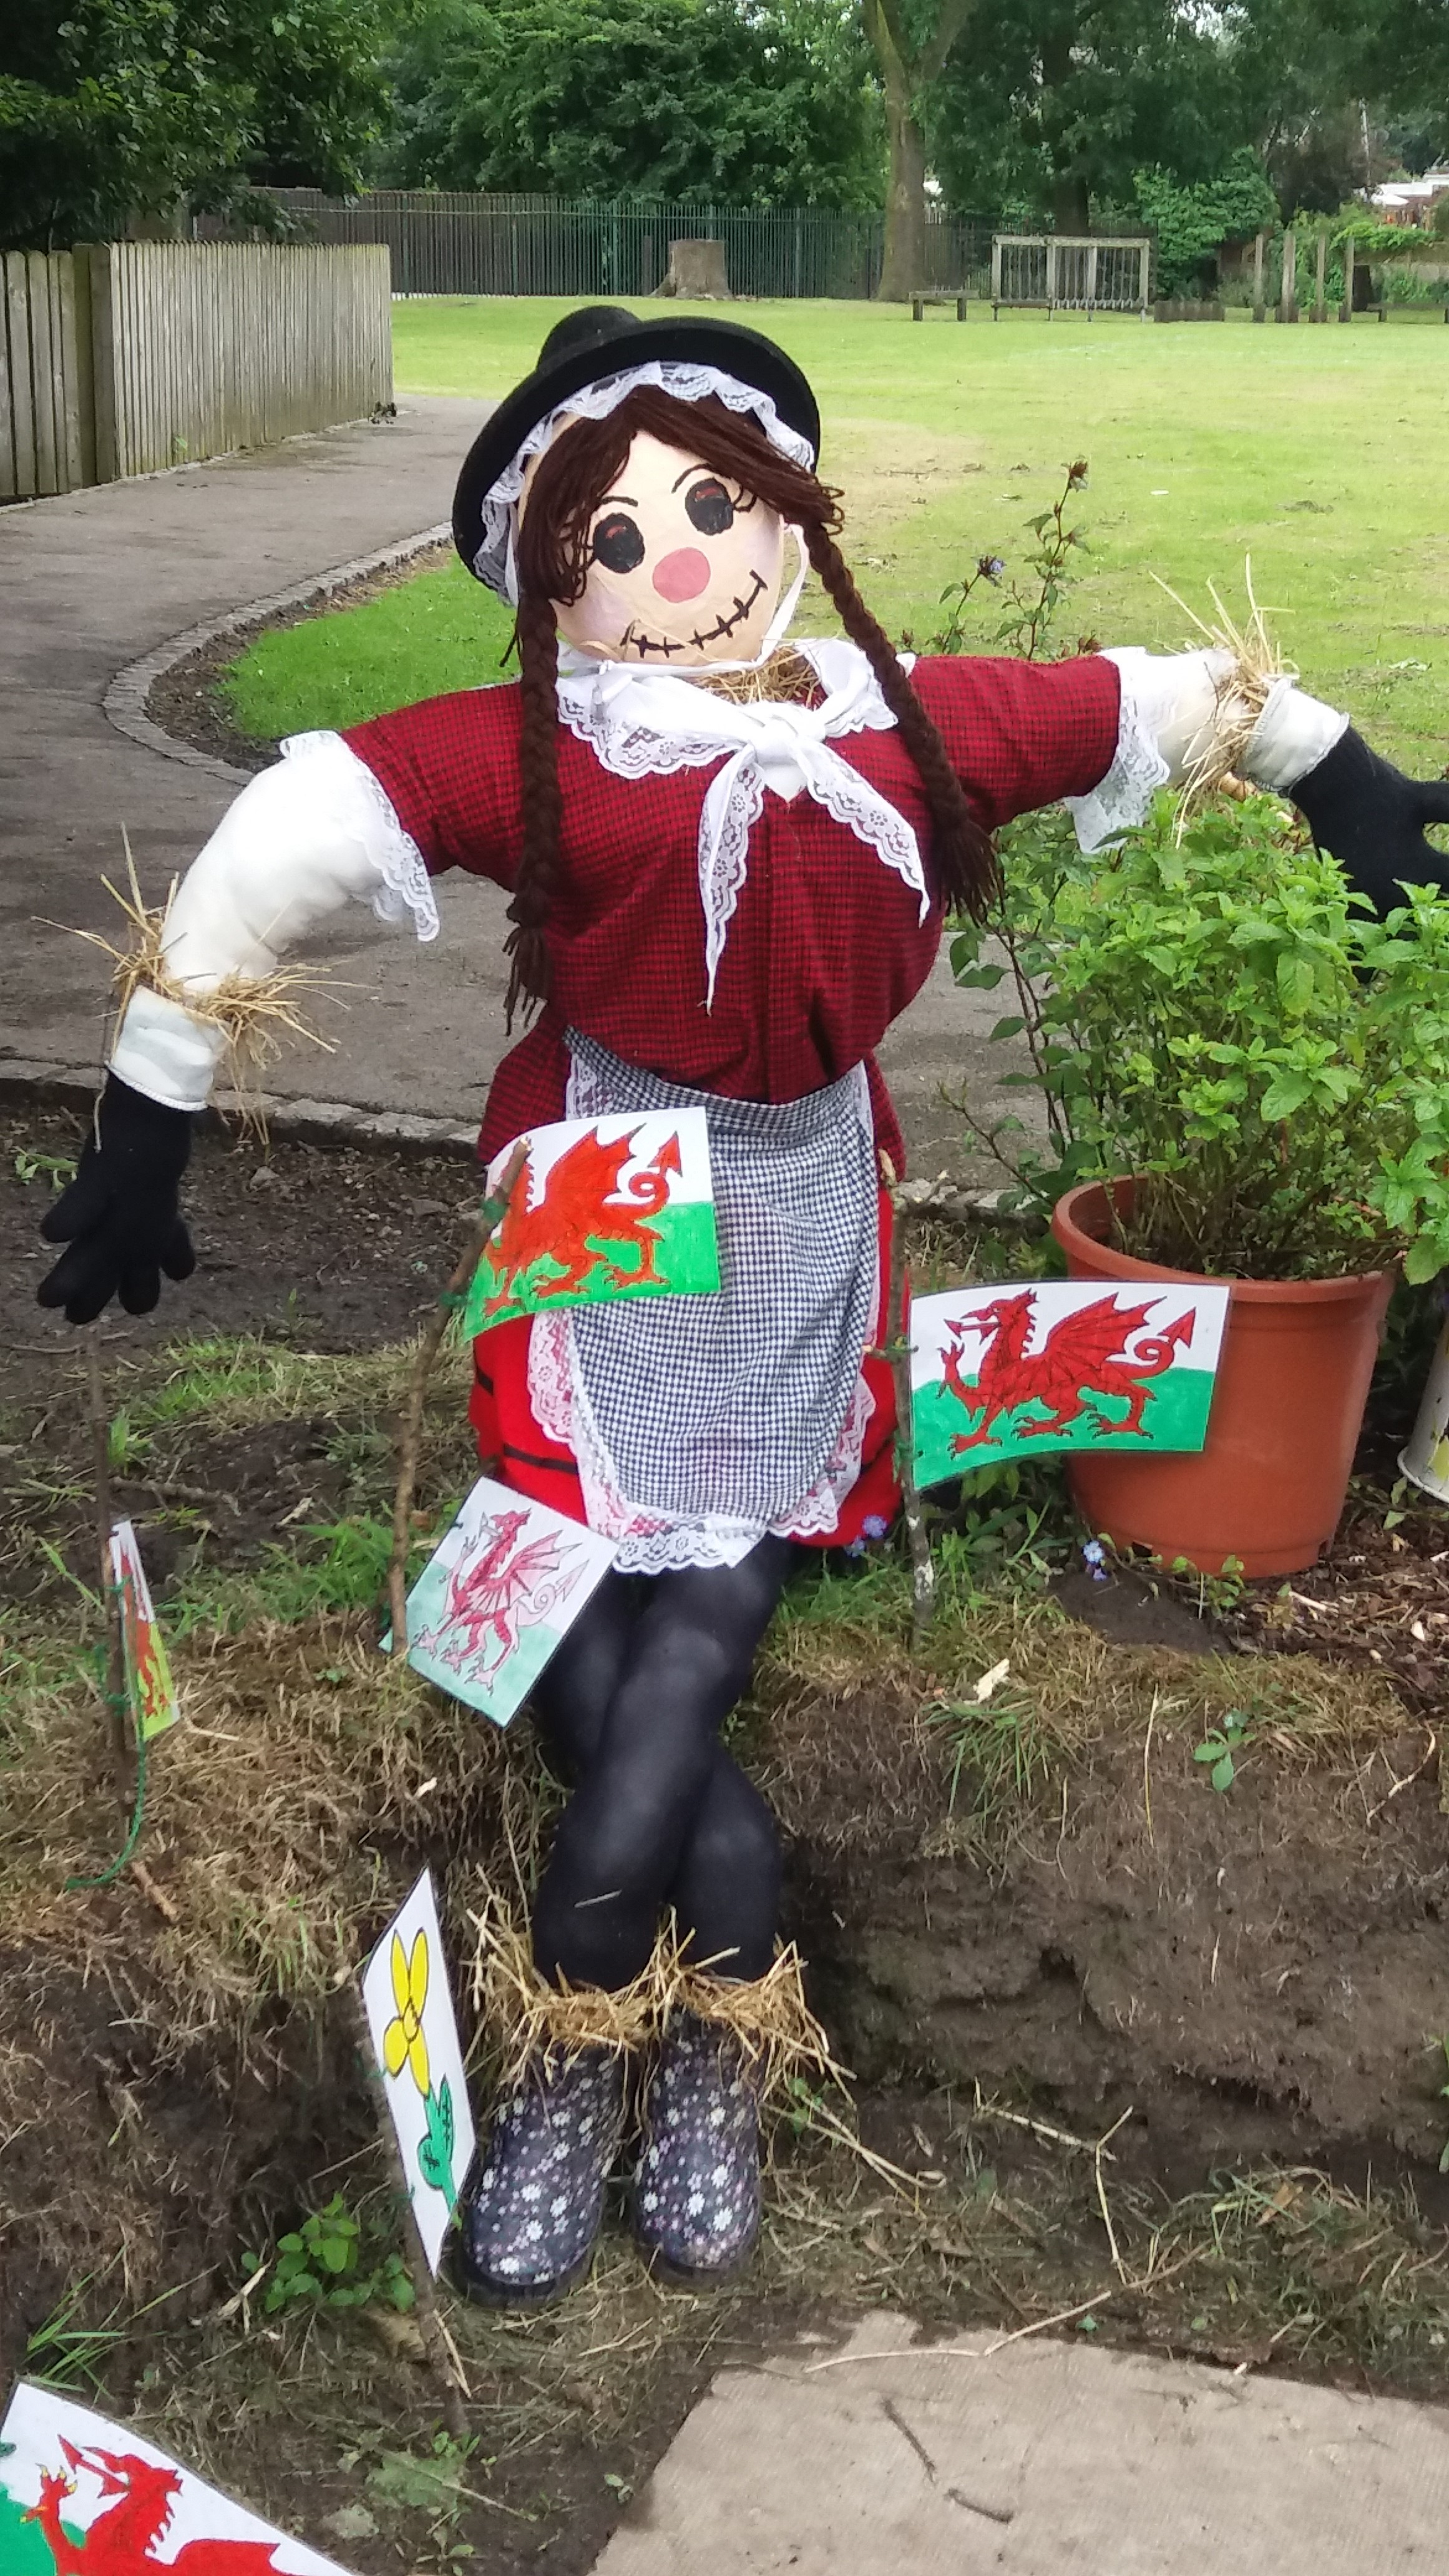 Welsh Lady - Year 4